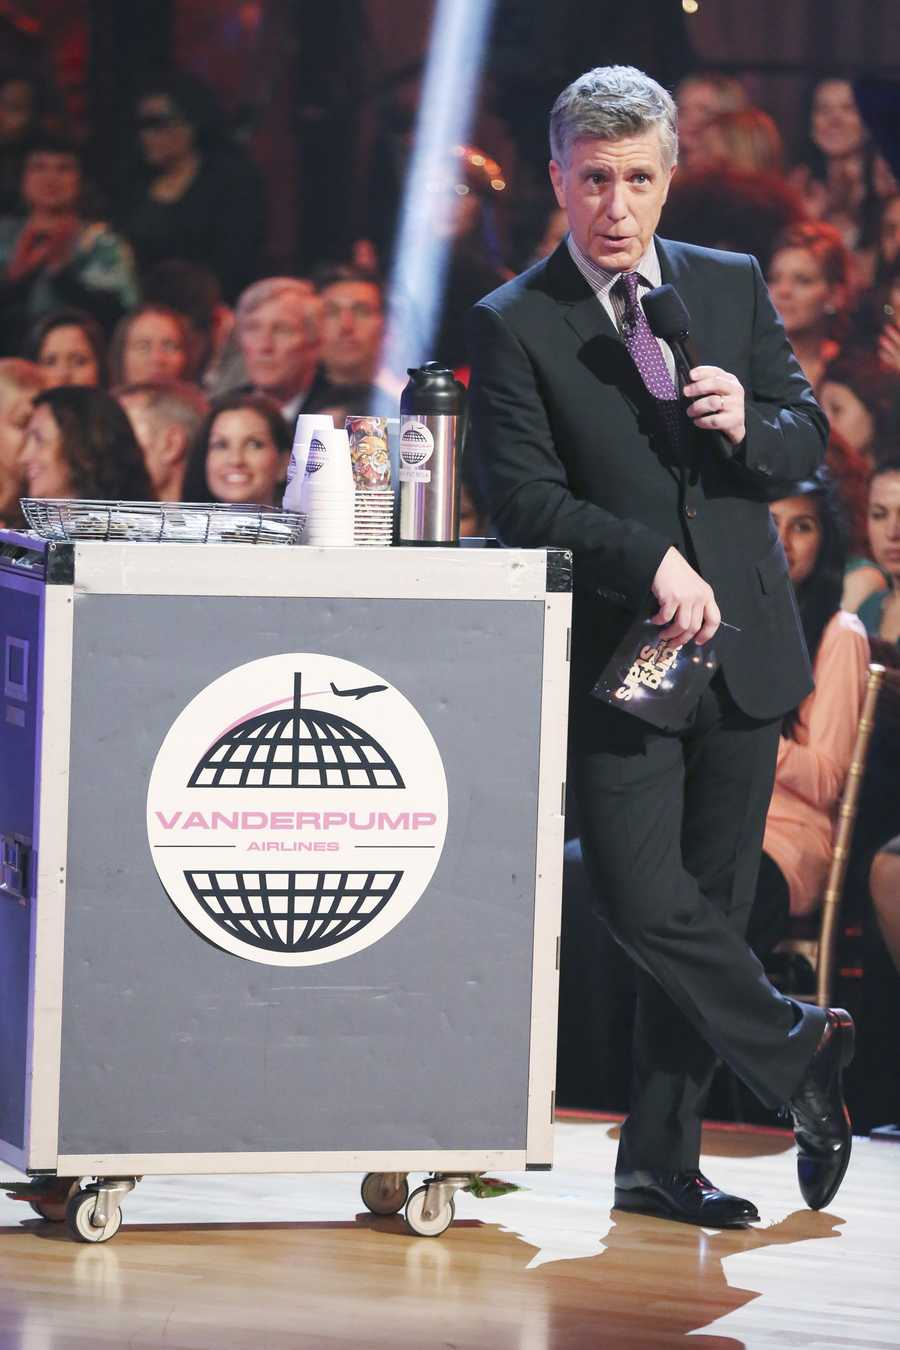 """Tom Bergeon, Host - The competition heats up on """"Dancing with the Stars"""" as the celebrities take on new dance routines and fight for survival. The couples performed a Jive, Quickstep or Jazz routine. (Photo: ABC/Adam Taylor)"""